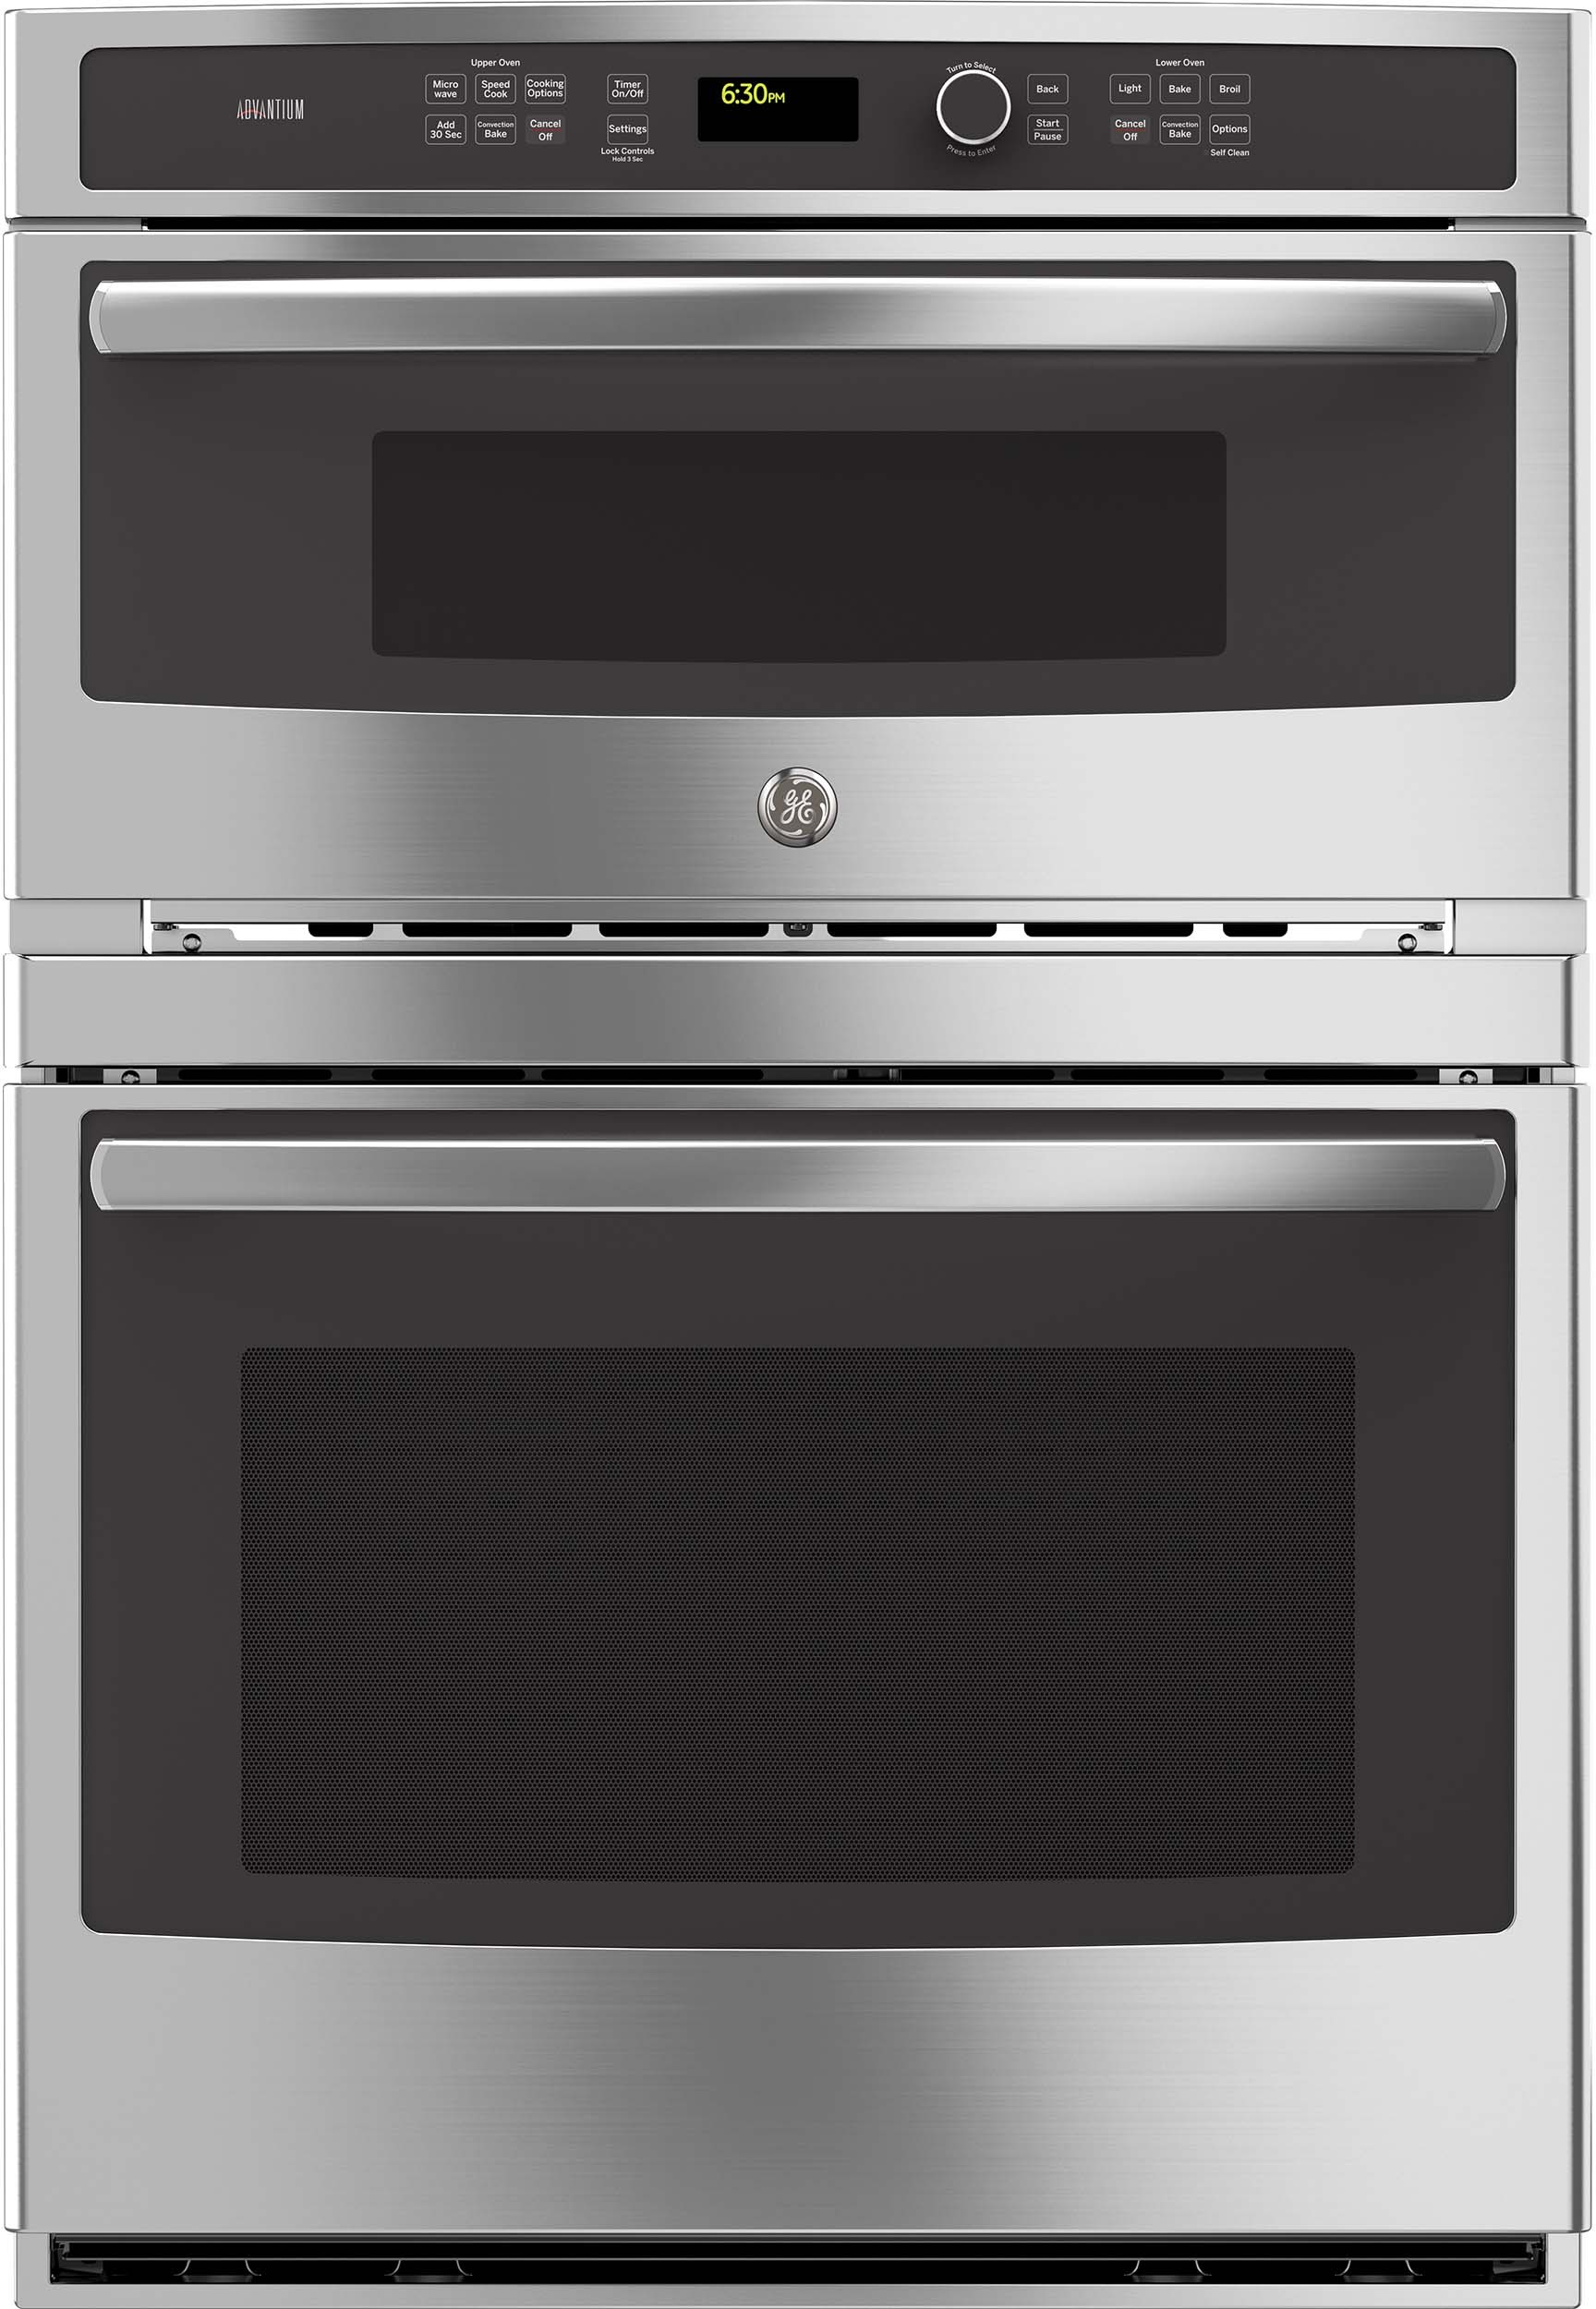 Combination Microwave Oven Ge Profile 30 Inch Built In Combination Wall Oven